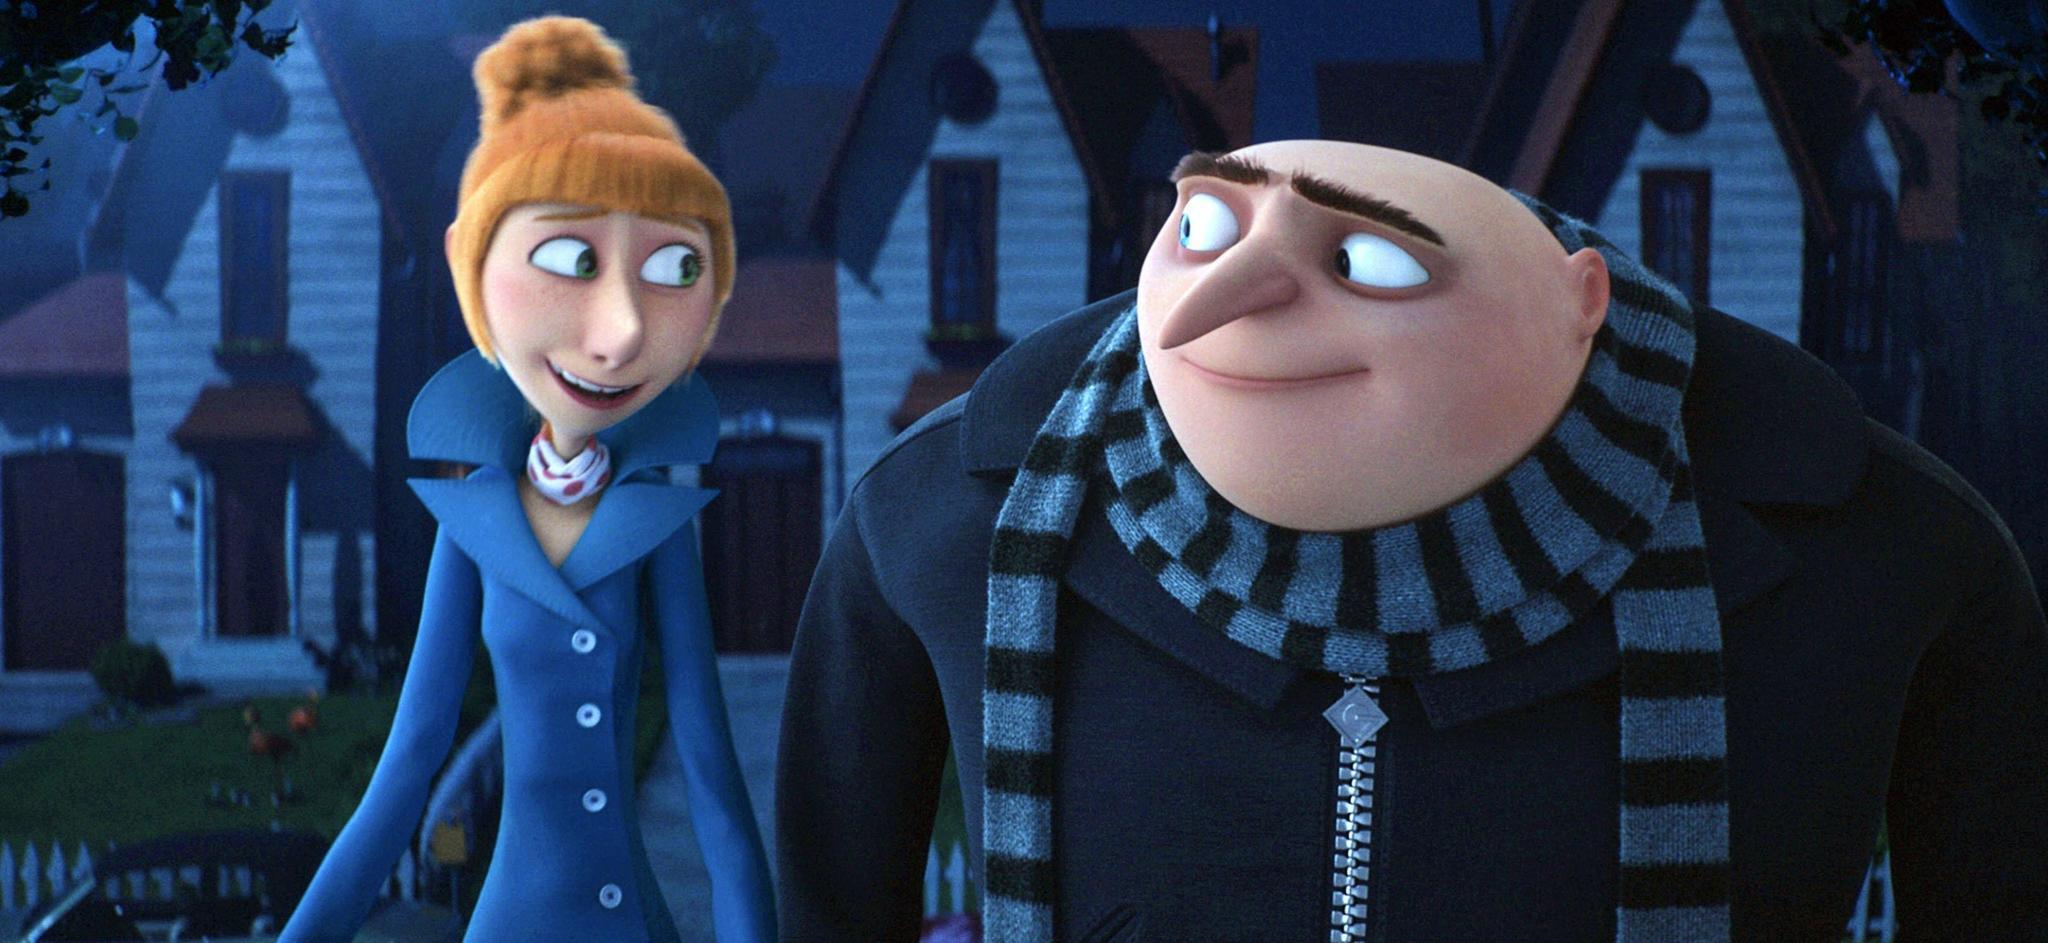 u0027Despicable Me 3u0027 review Minions in prison a questionable marketing choice - Chicago Tribune  sc 1 st  Chicago Tribune & Despicable Me 3u0027 review: Minions in prison a questionable marketing ...